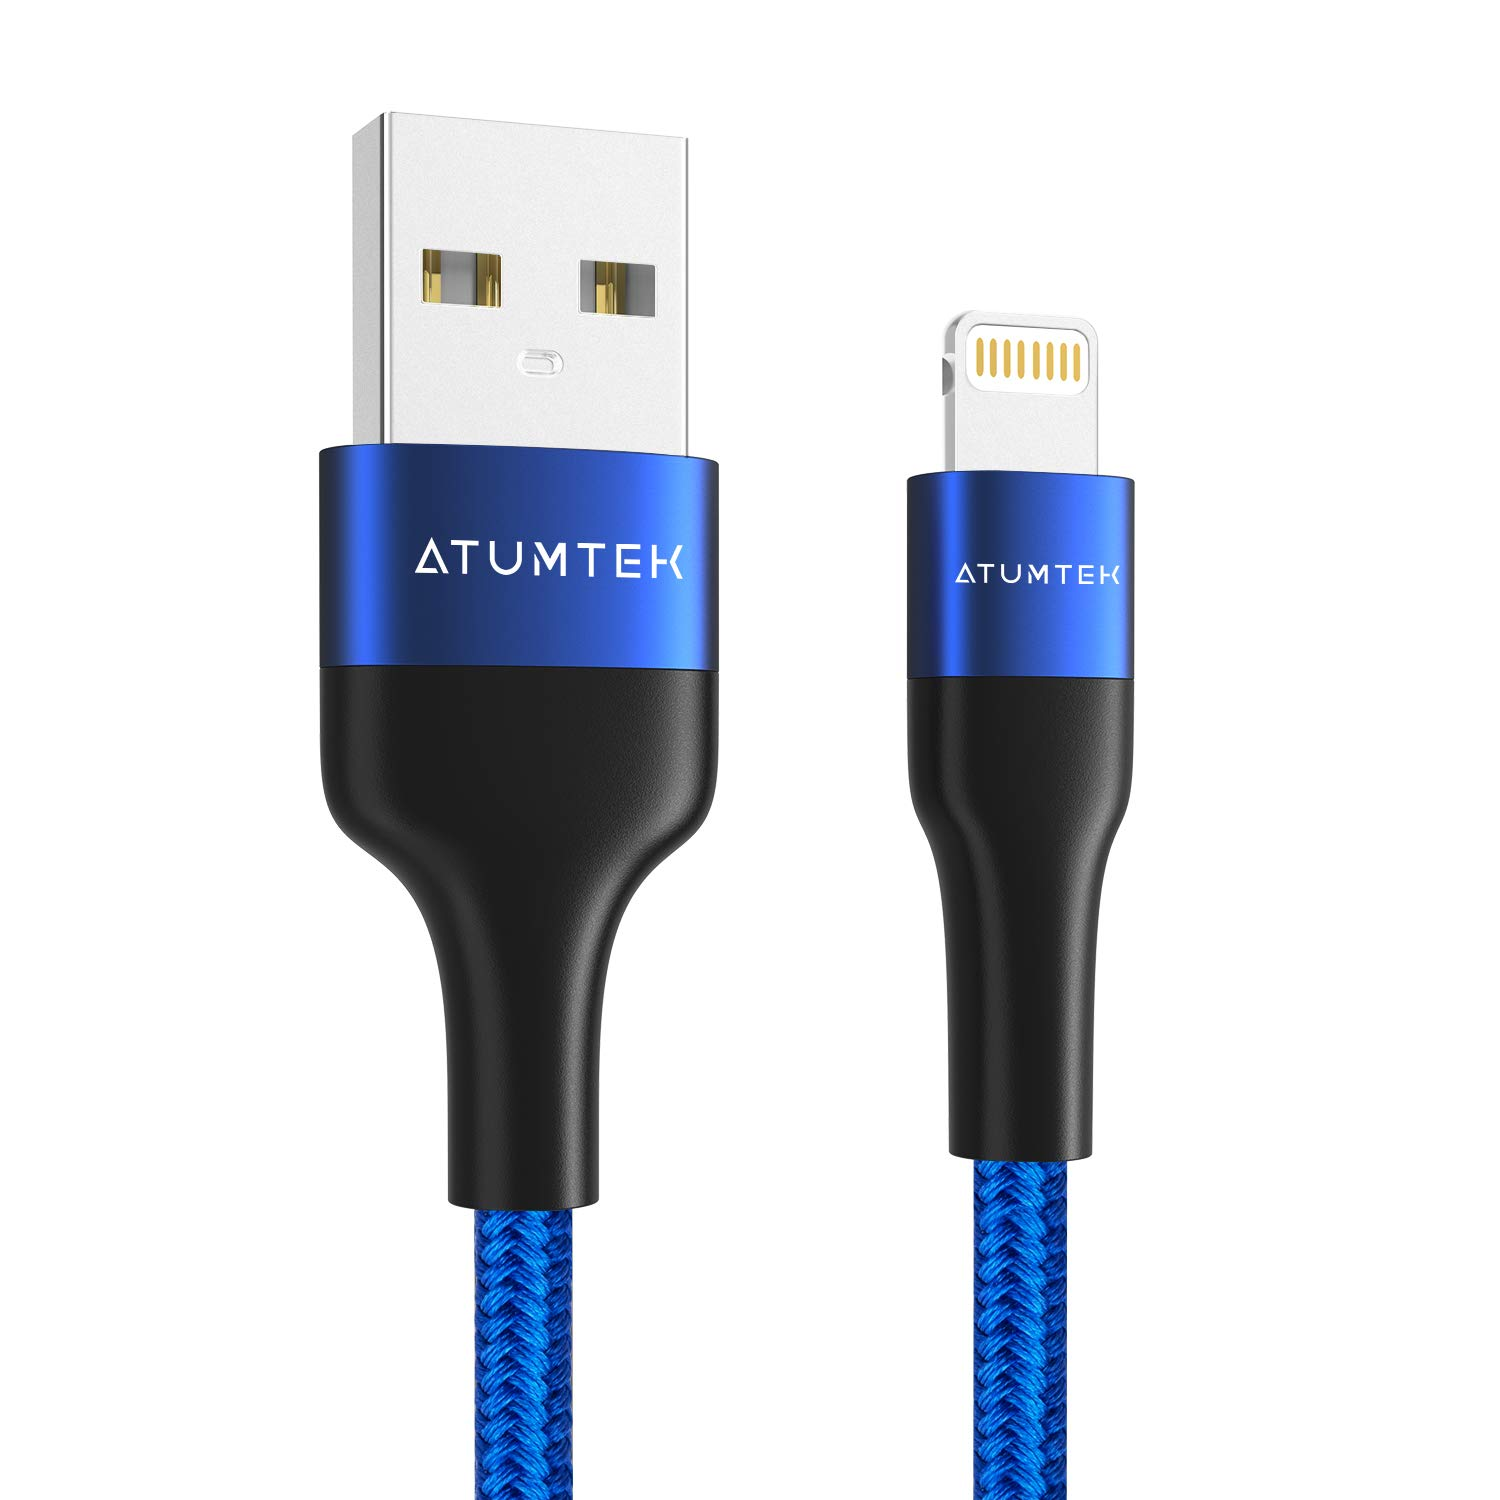 ATUMTEK iPhone Charger Cable [Apple MFi Certified] 3M/10ft Lightning to USB Cable Nylon Braided Charging Cable for New AirPods, iPhone 11/11 Pro/XS Max/XS/XR/X/8/7/6s/6 Plus, iPad and iPod - Blue